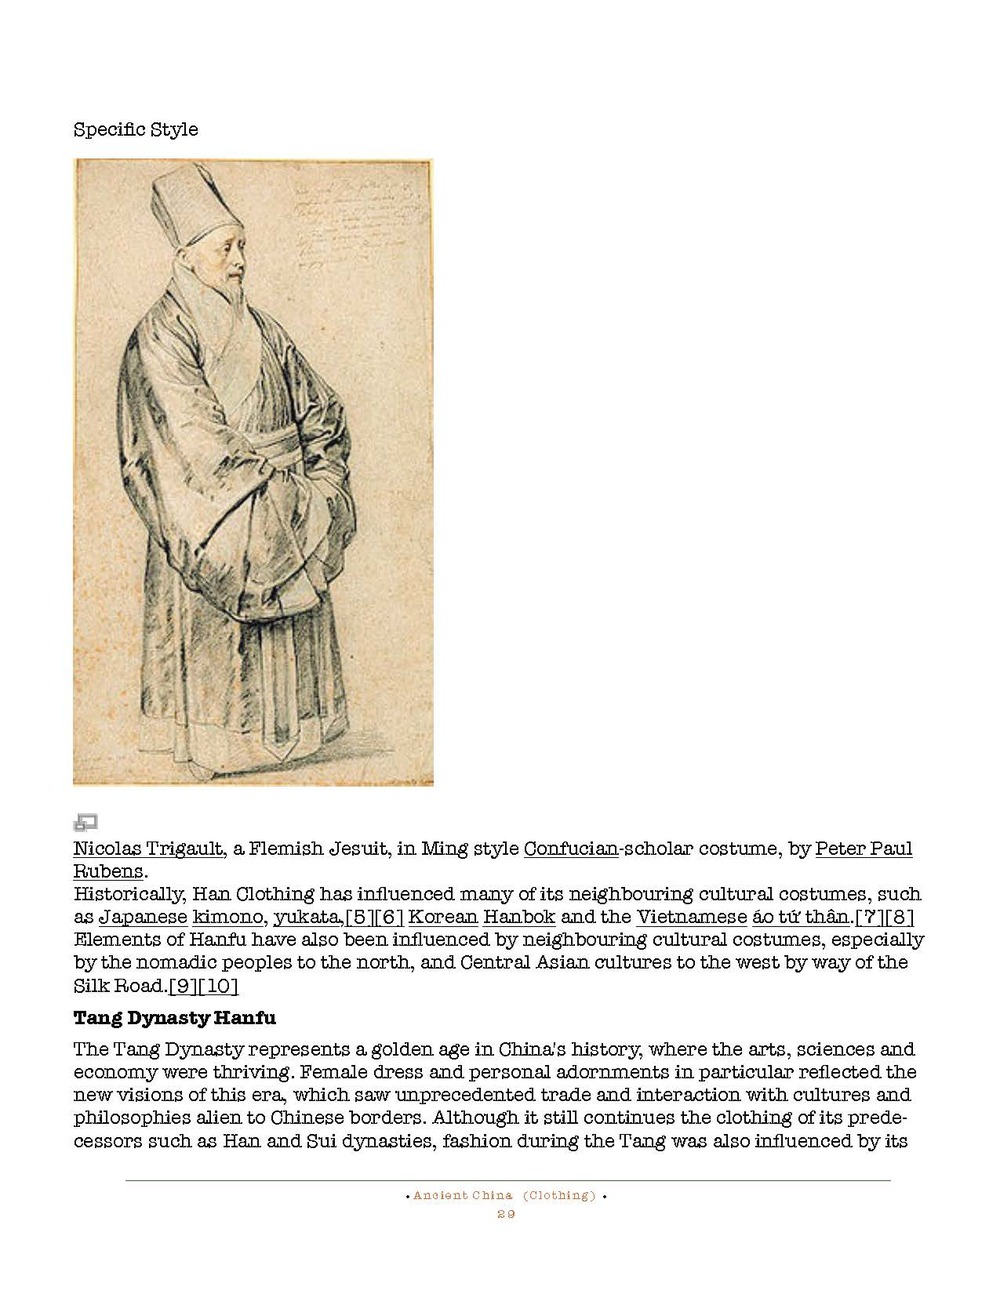 HOCE- Ancient China Notes (clothing)_Page_29.jpg